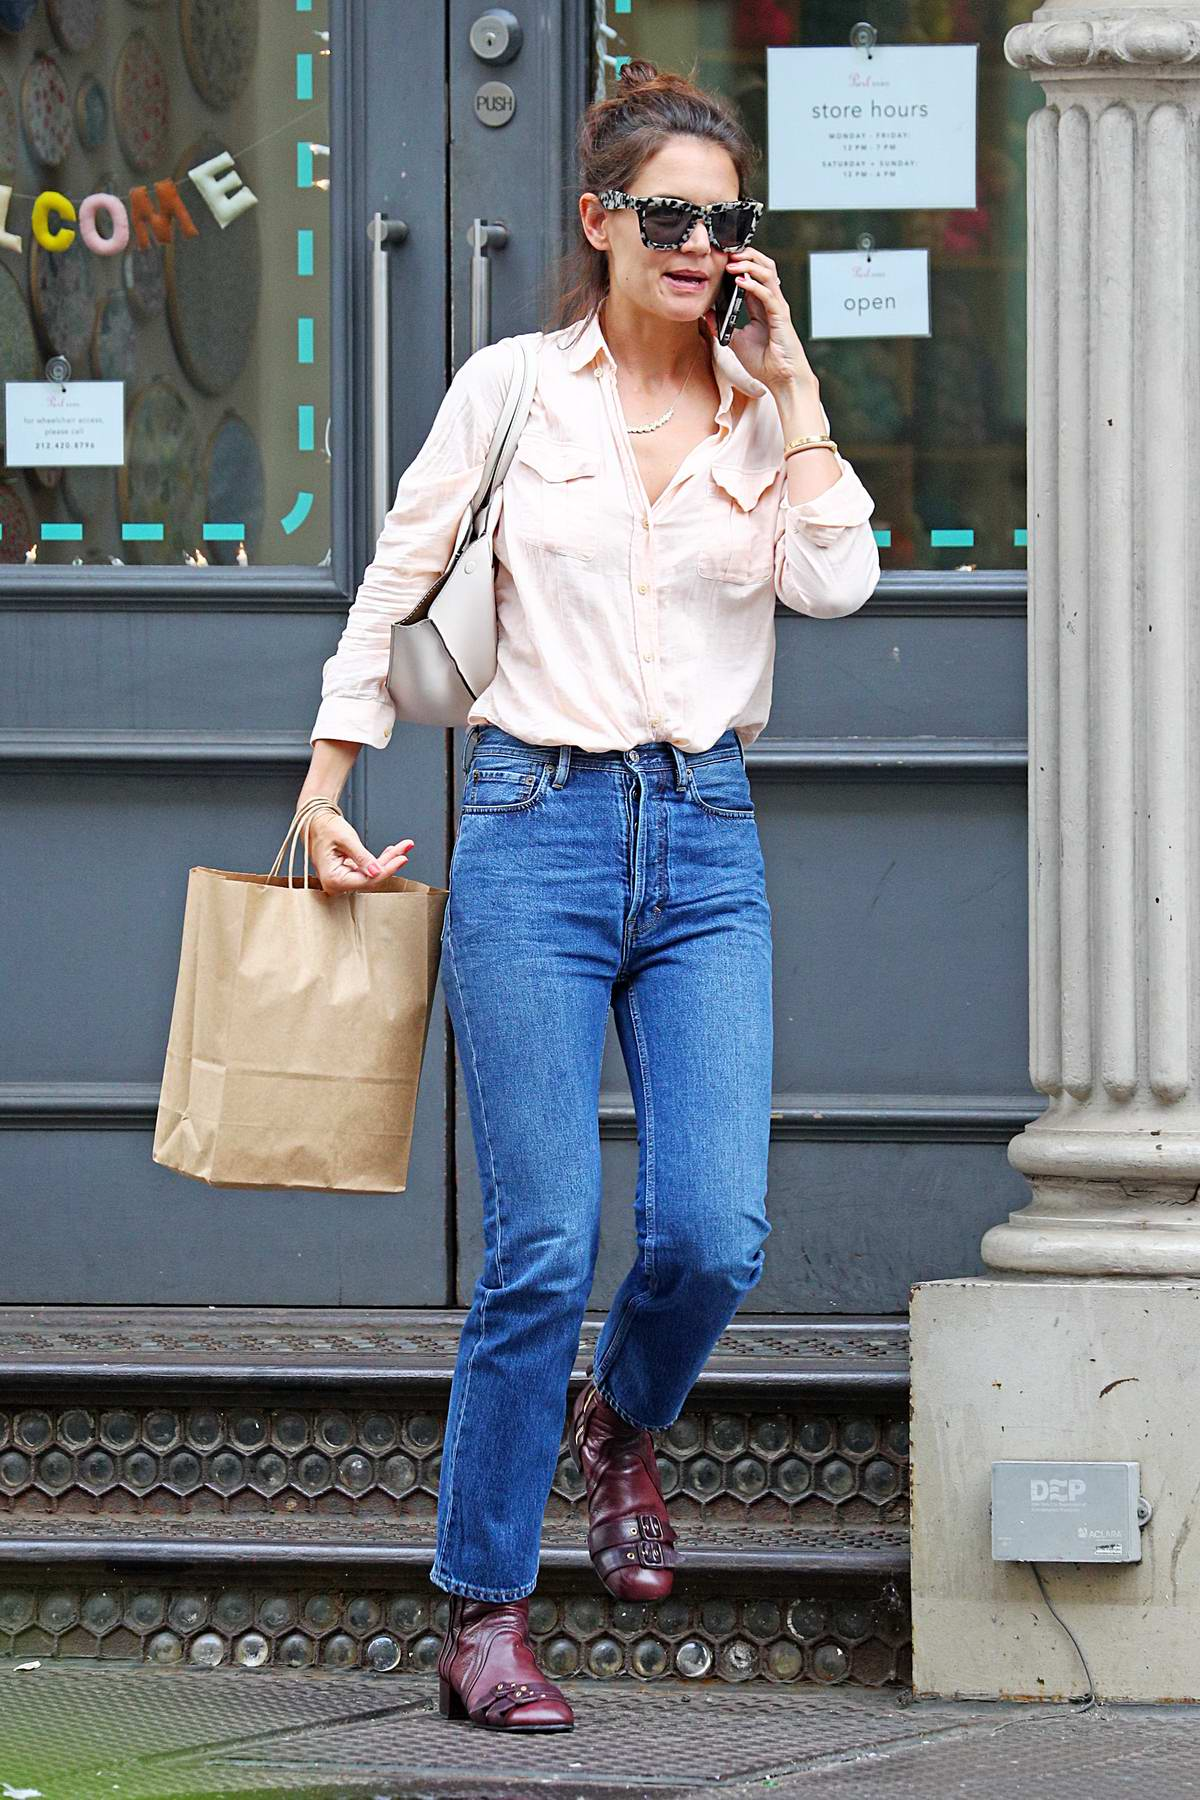 Katie Holmes spotted shopping in Soho, New York